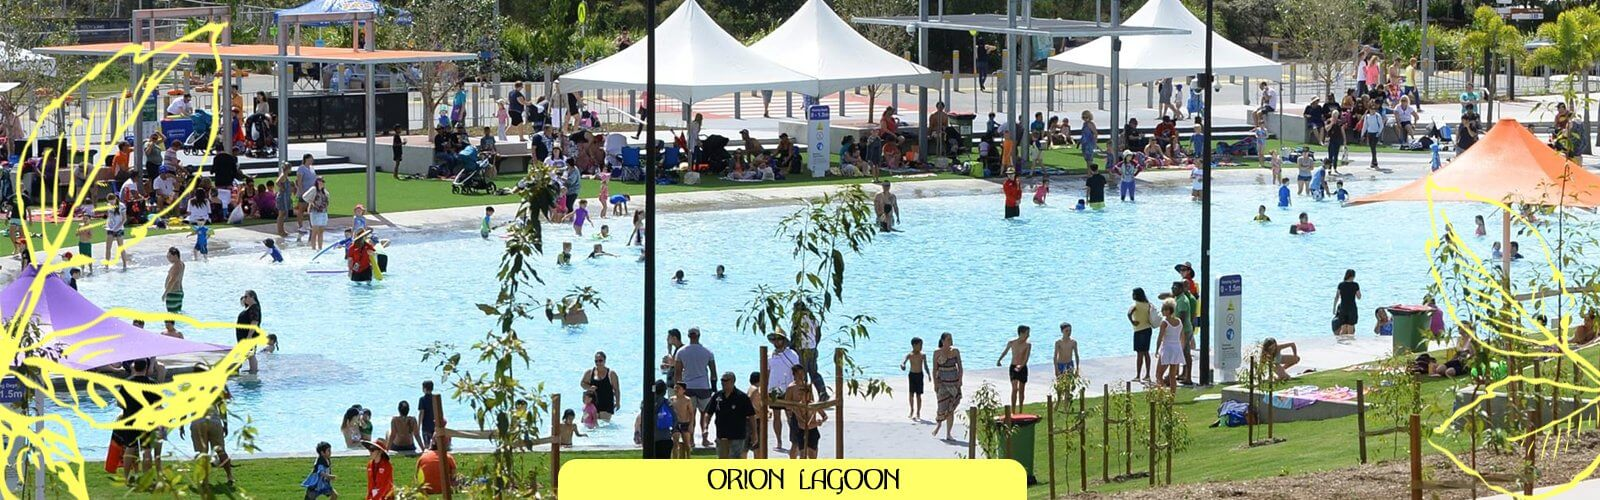 Orion Lagoon | Free Water Park in Springfield